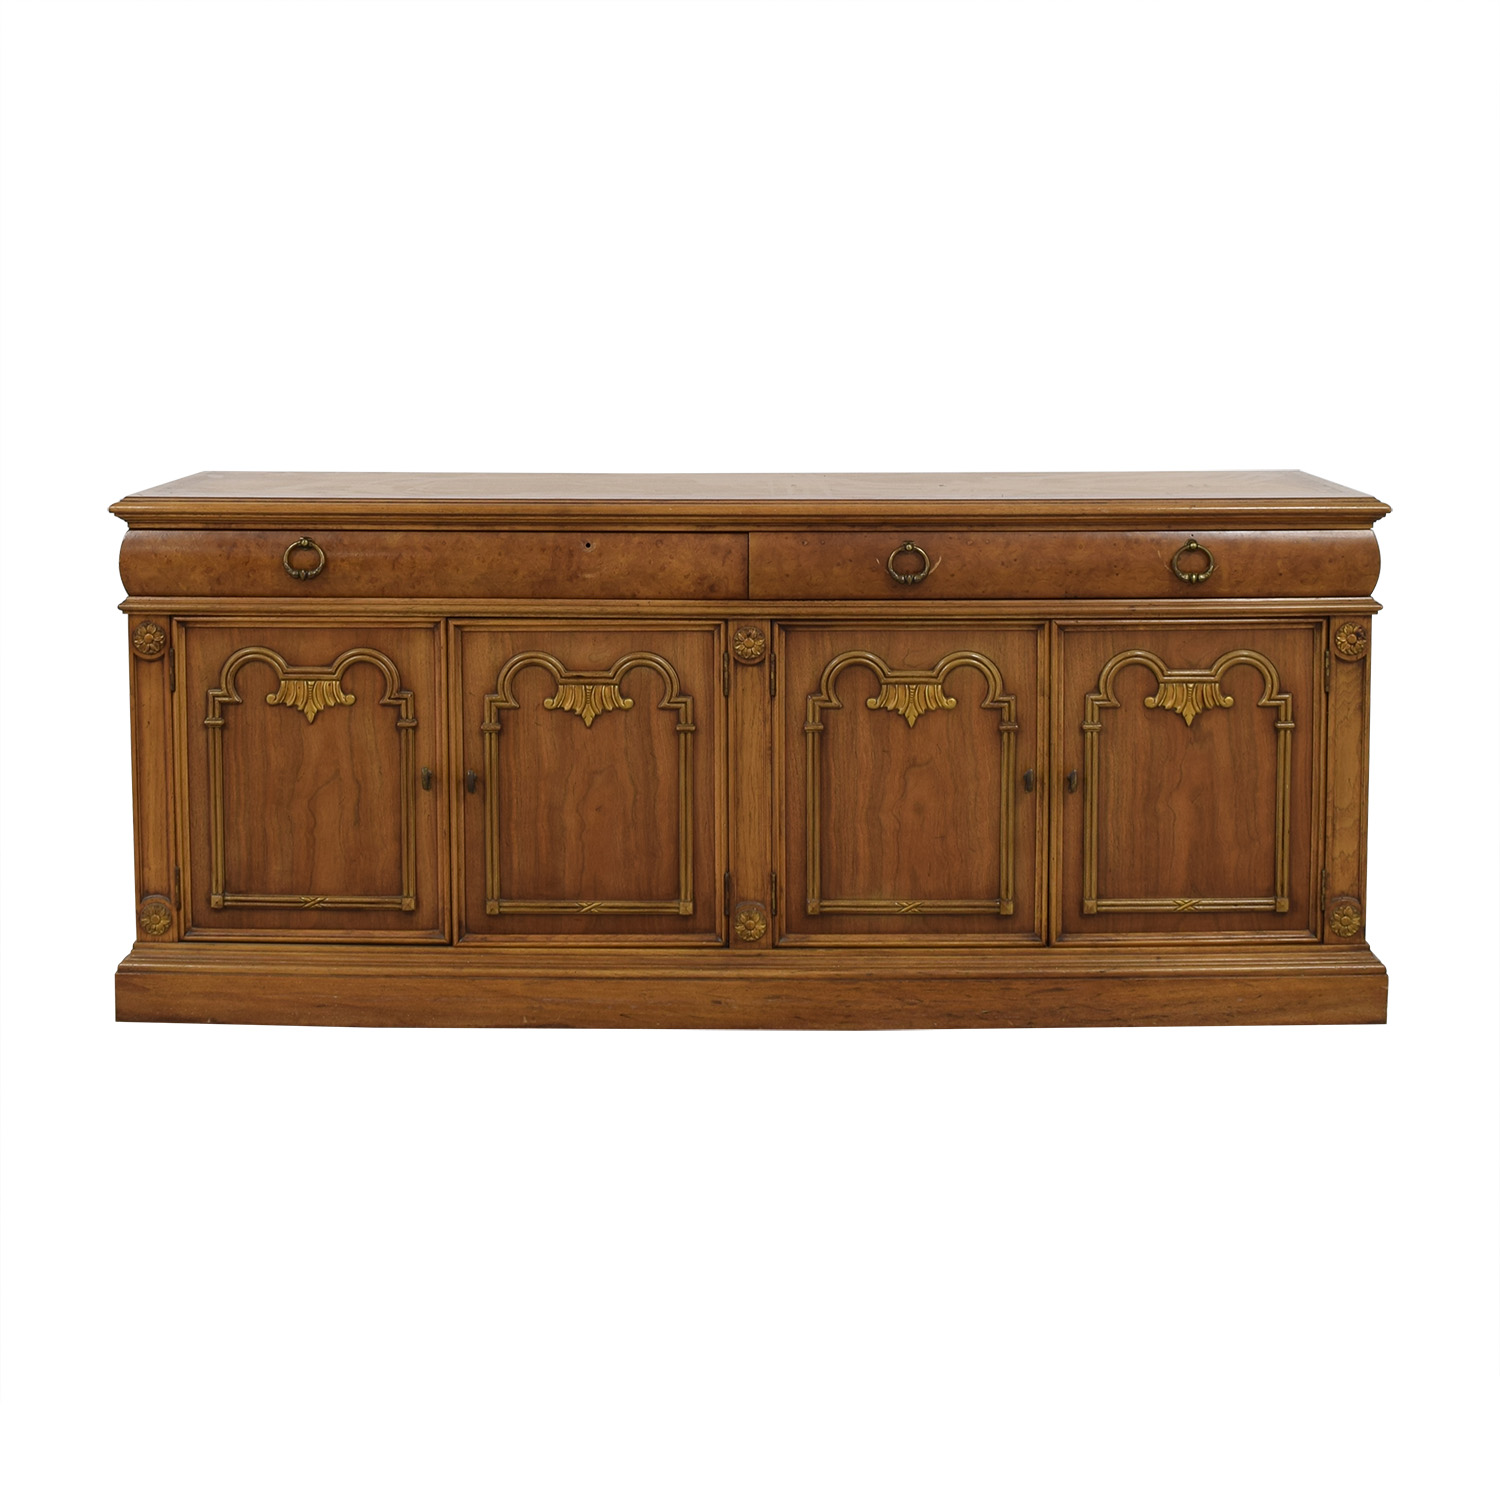 shop Thomasville Thomasville Buffet Storage Cabinet online